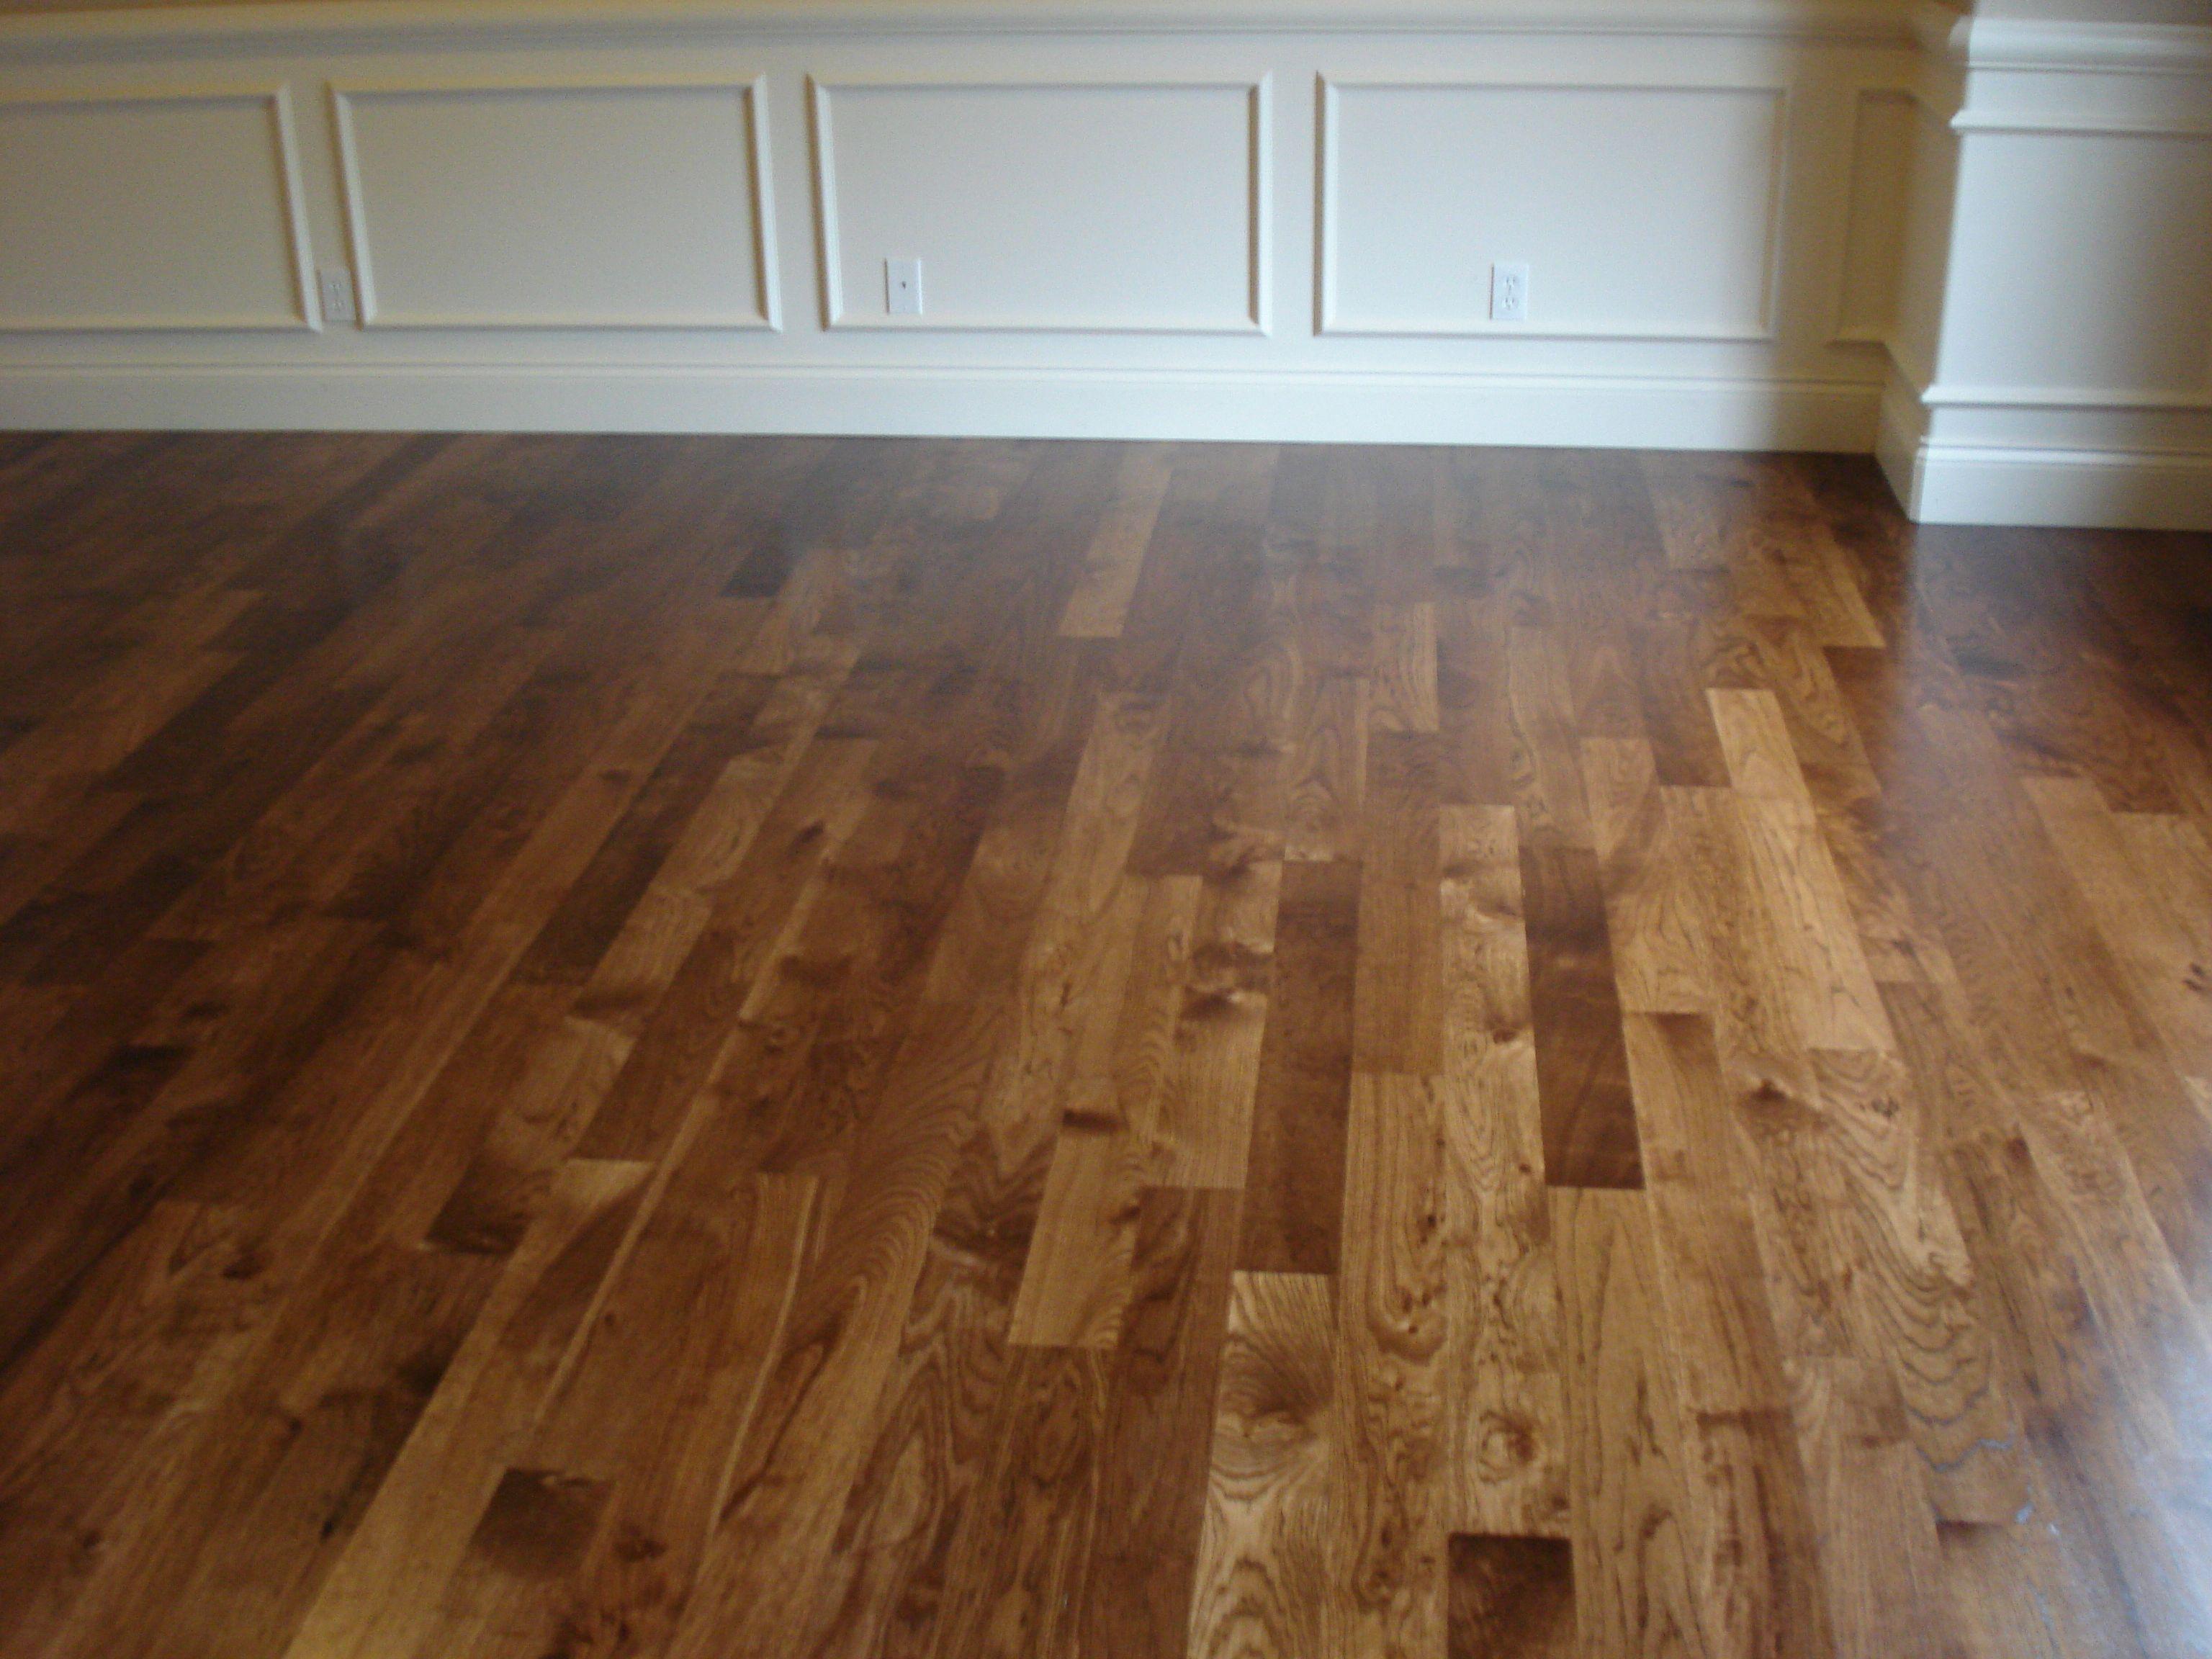 Hardwood Flooring Examples Of Hardwood Floor Rooms That